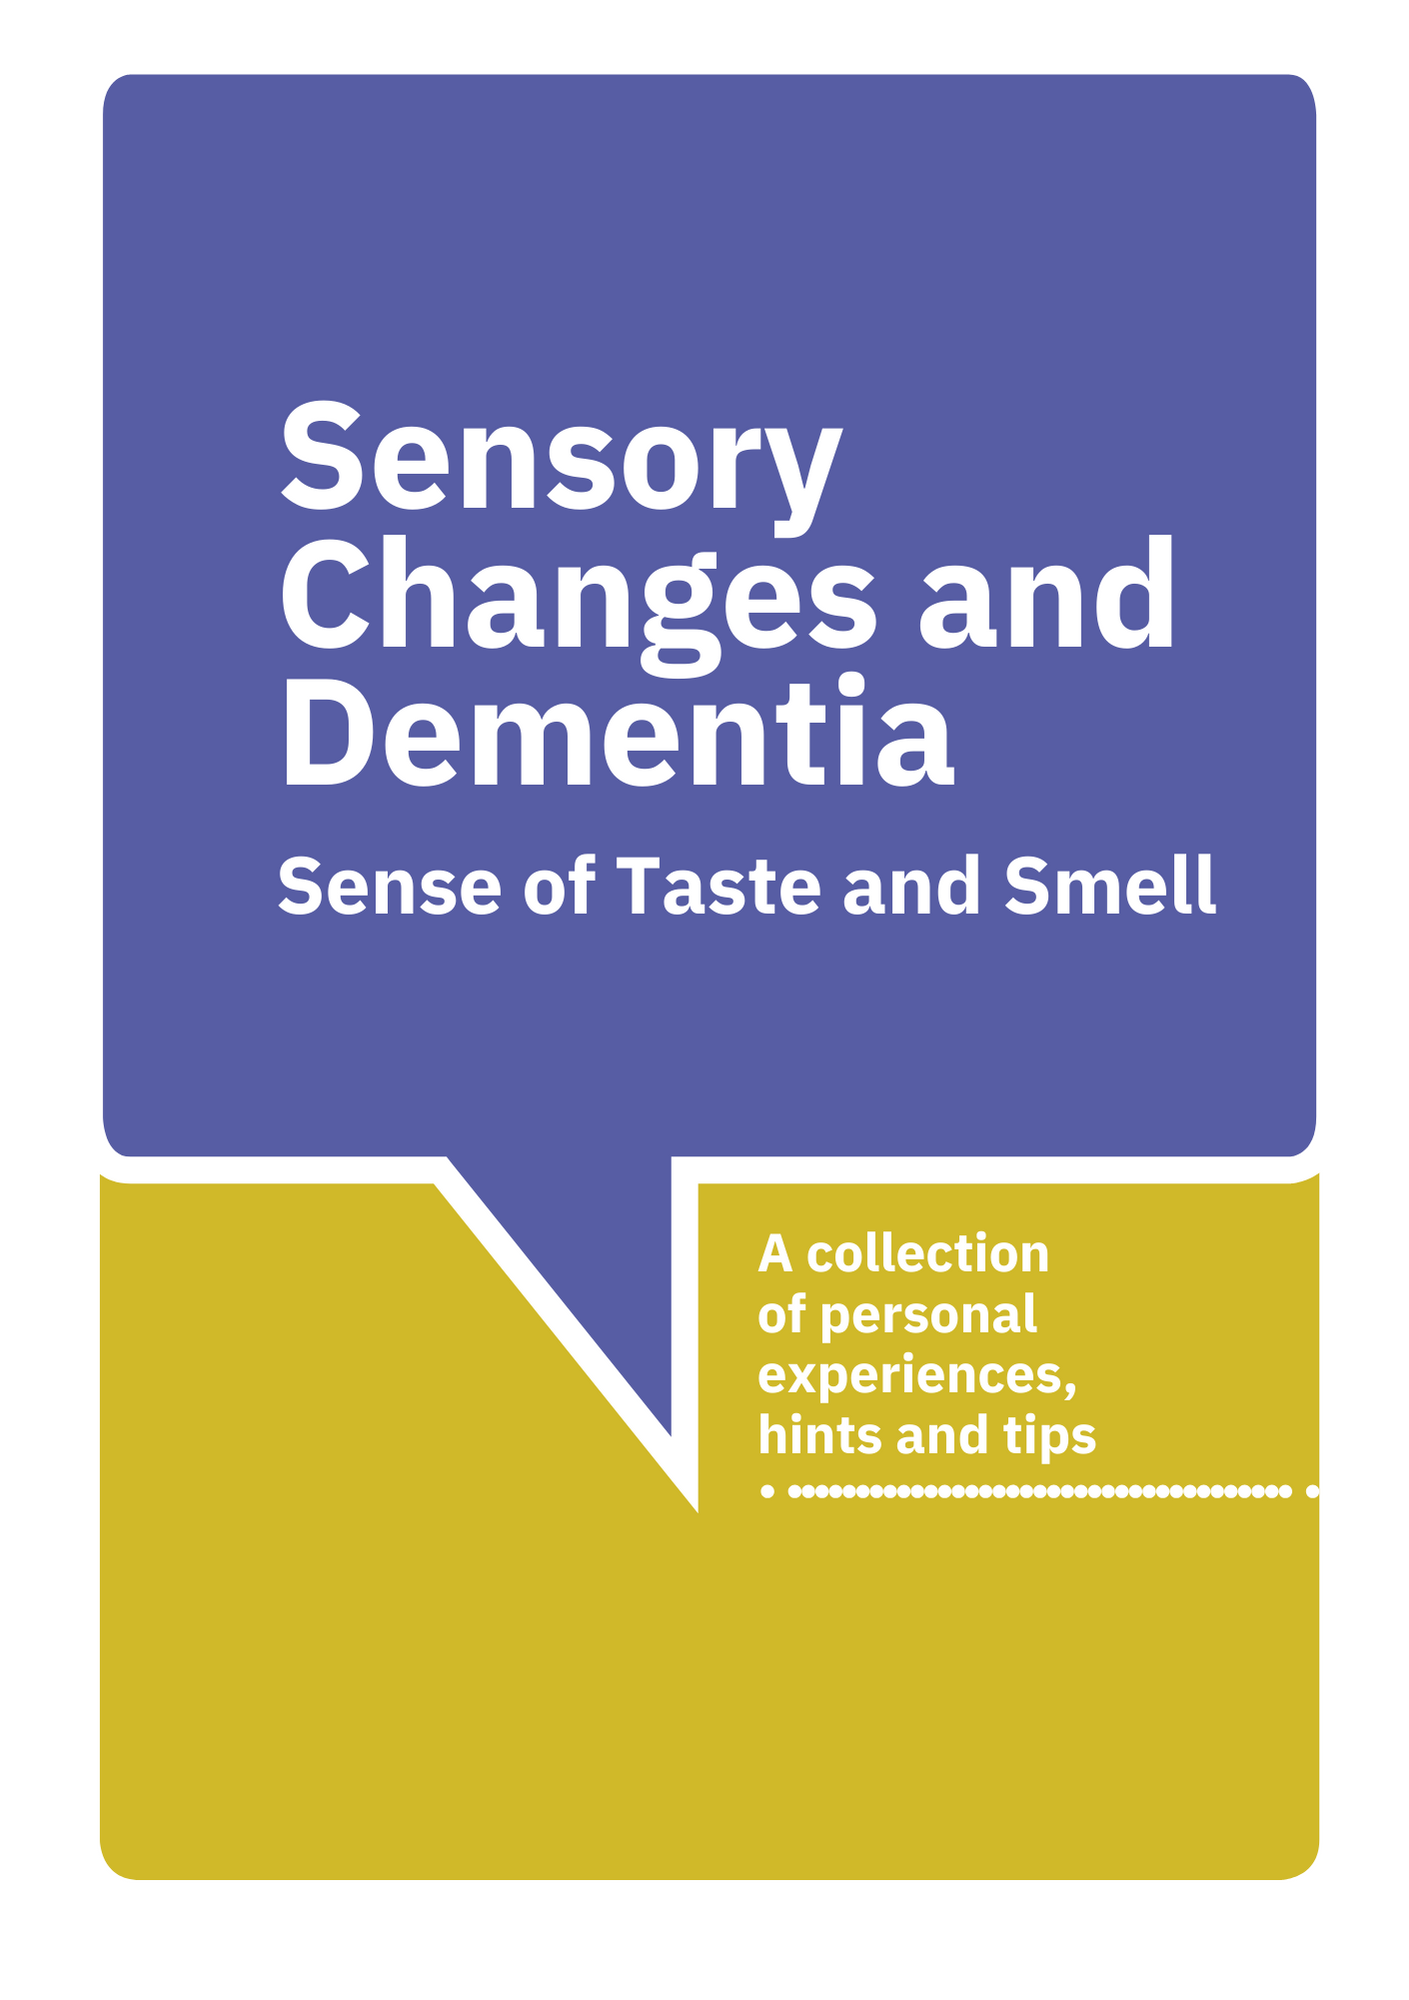 Sensory changes and dementia - Sense of taste and smell. A collection of personal experiences, hints and tips